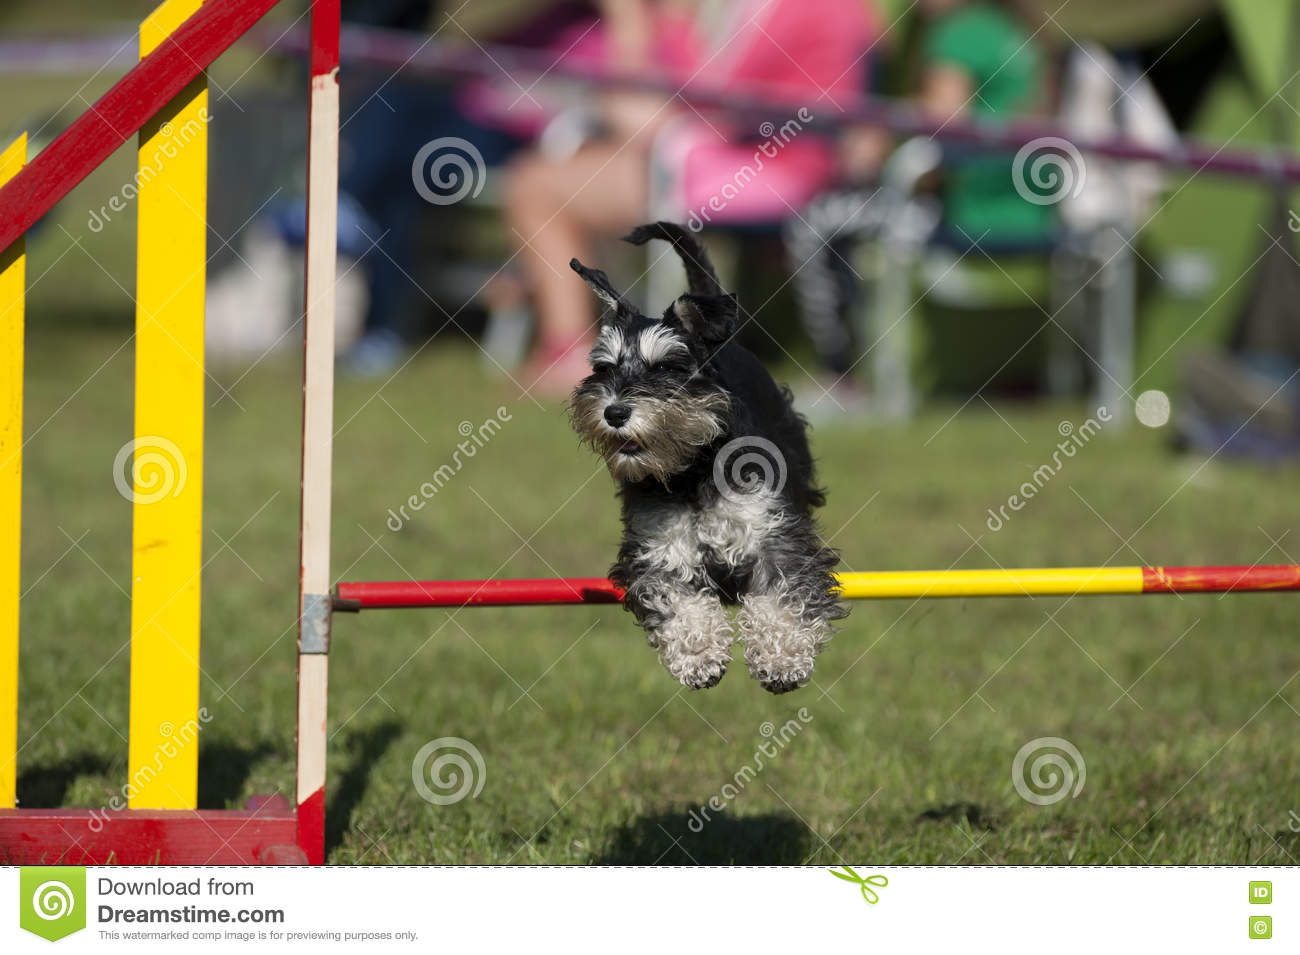 Cute Miniature Schnauzer jumping over agility hurdle on competition